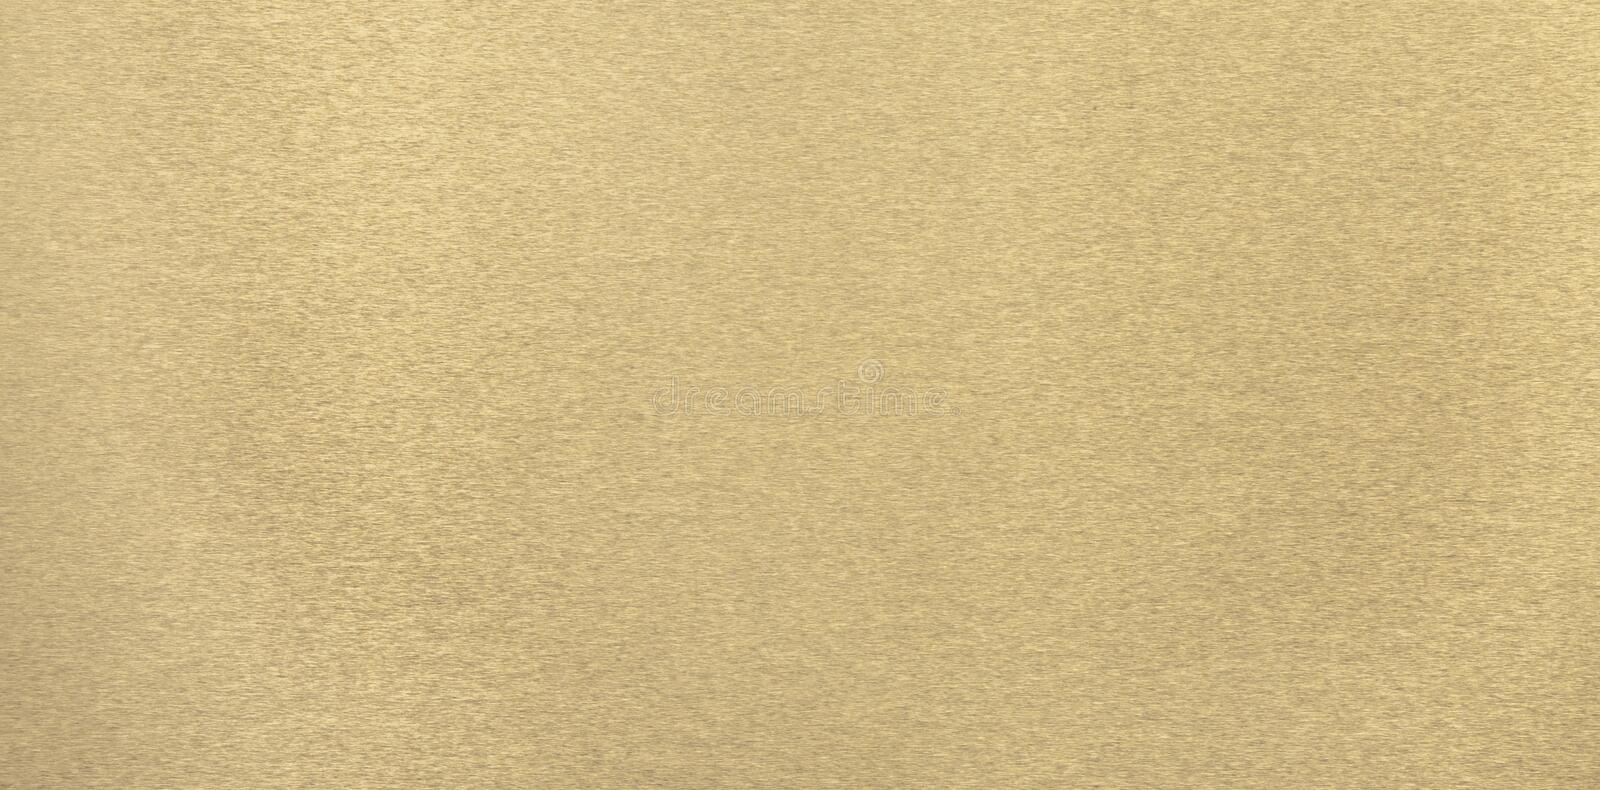 Seamless metallic texture and pattern for background template stock images